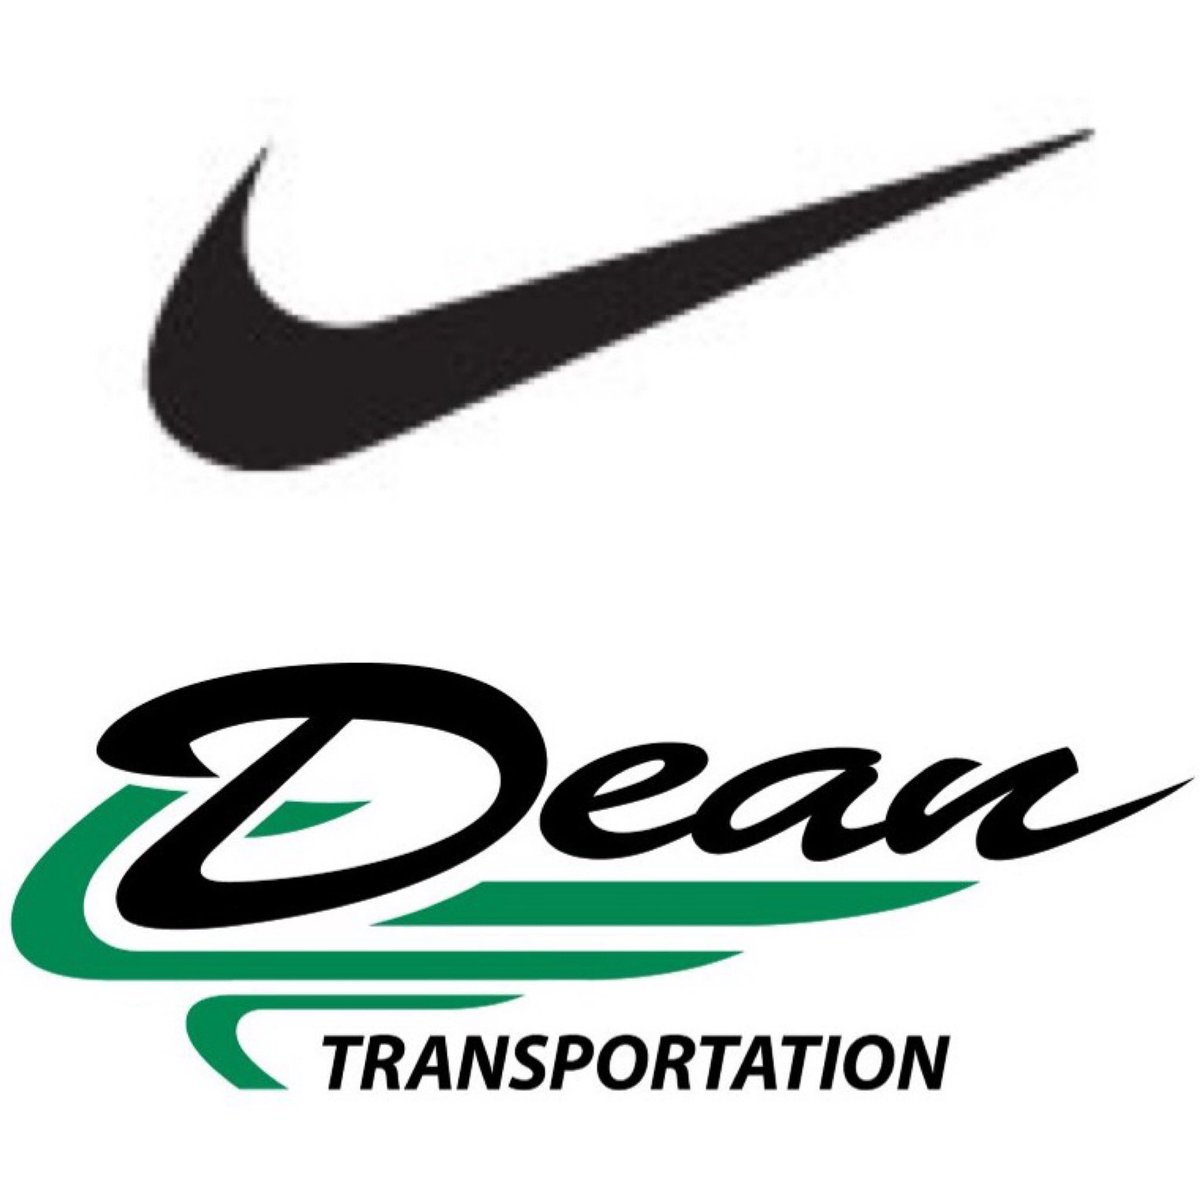 Wanted to give a shout out to some of our Elite 8 sponsors @Nike @deantrans thank you so much for your support!